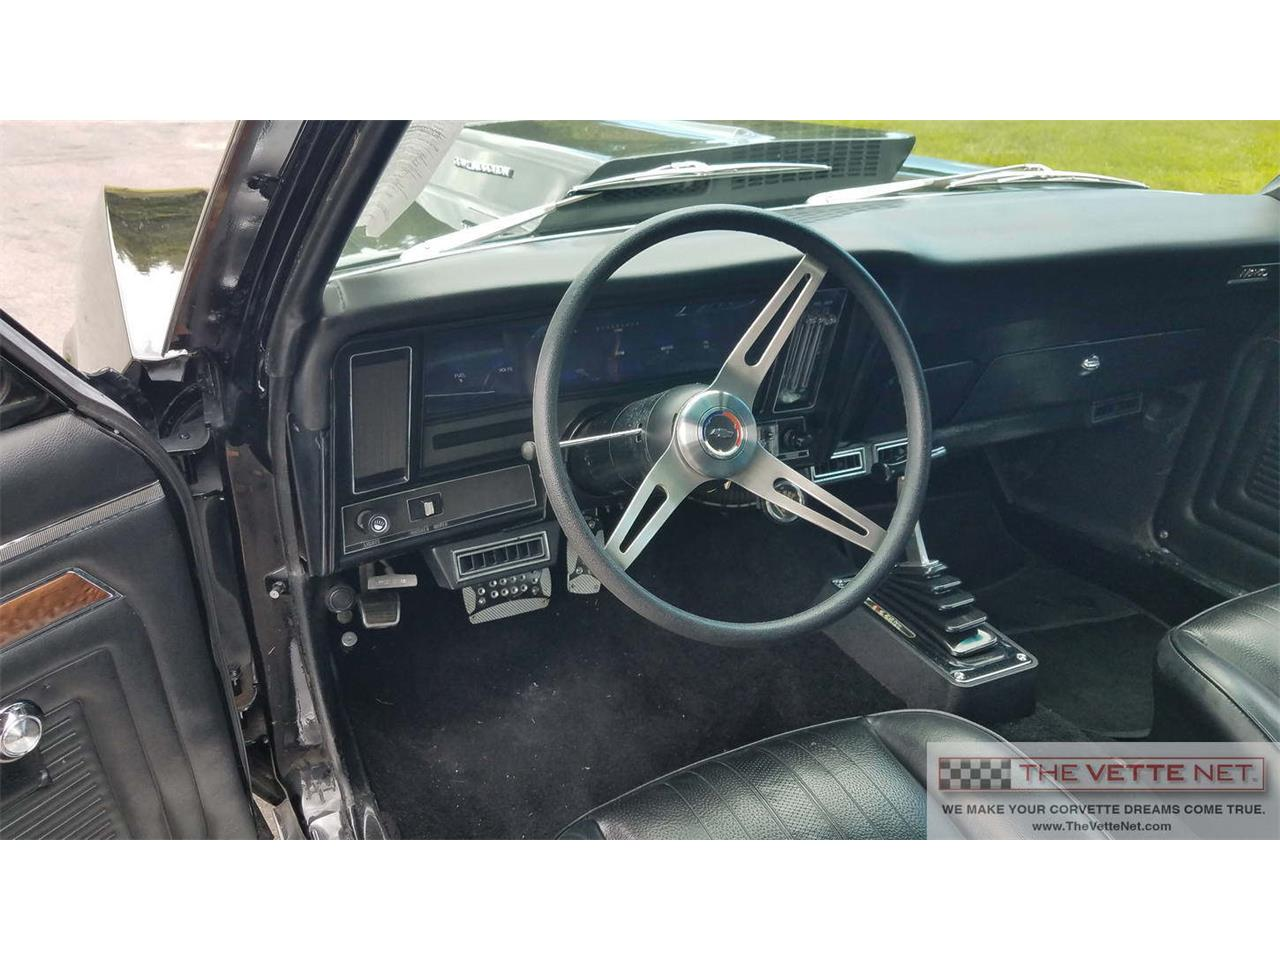 Large Picture of 1972 Nova located in Florida - $25,990.00 Offered by The Vette Net - LCBP